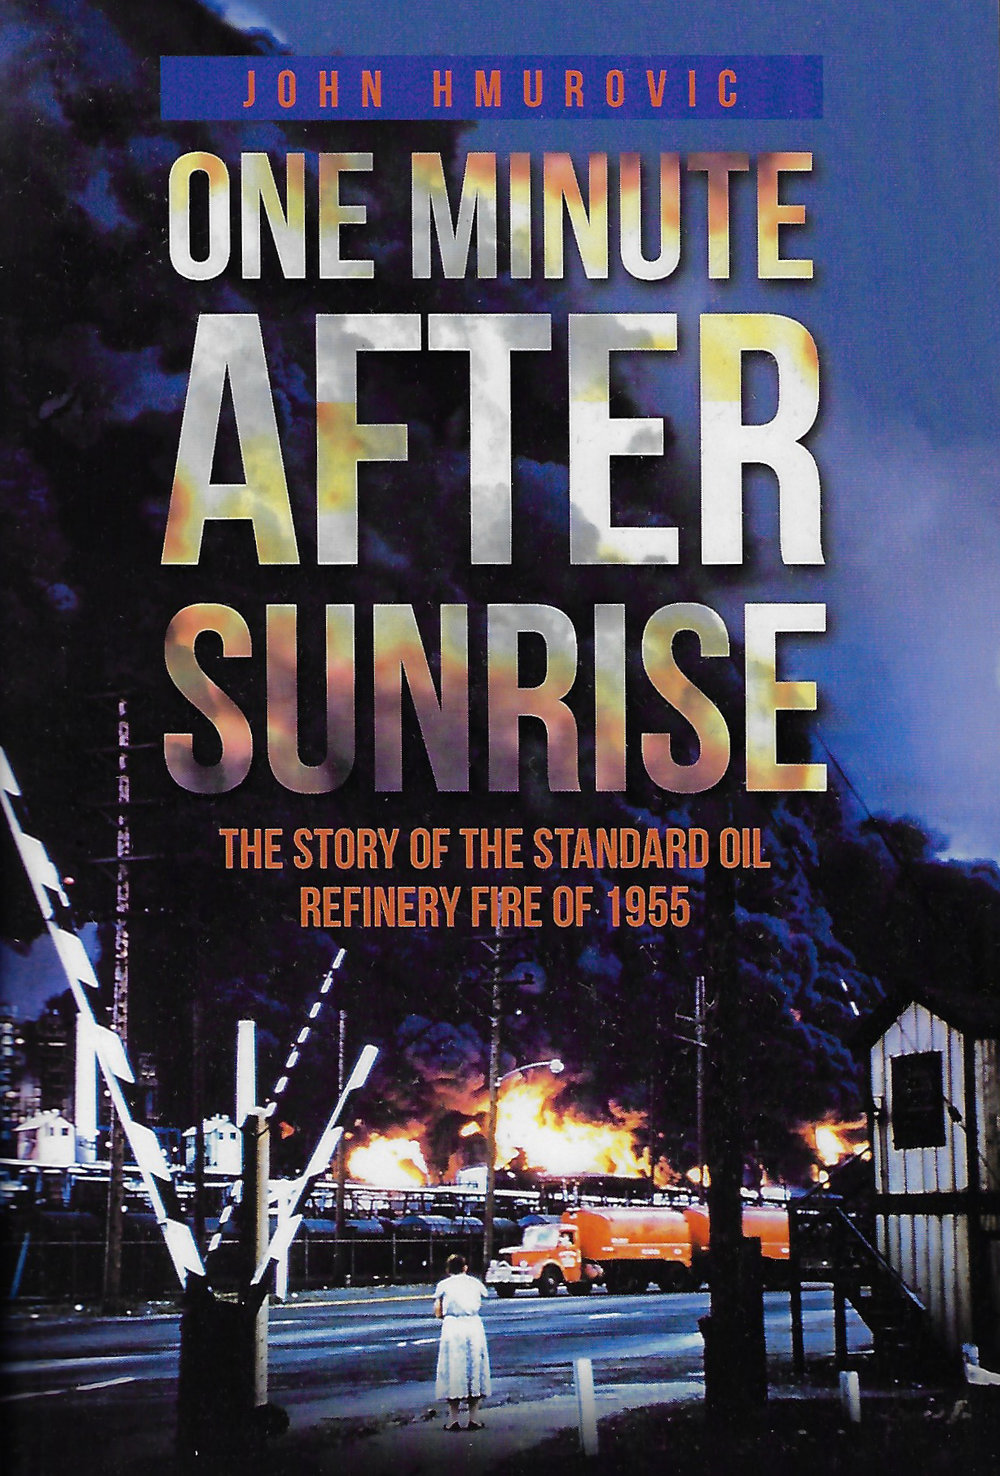 One Minute After Sunrise  By John Hmurovic (2017)